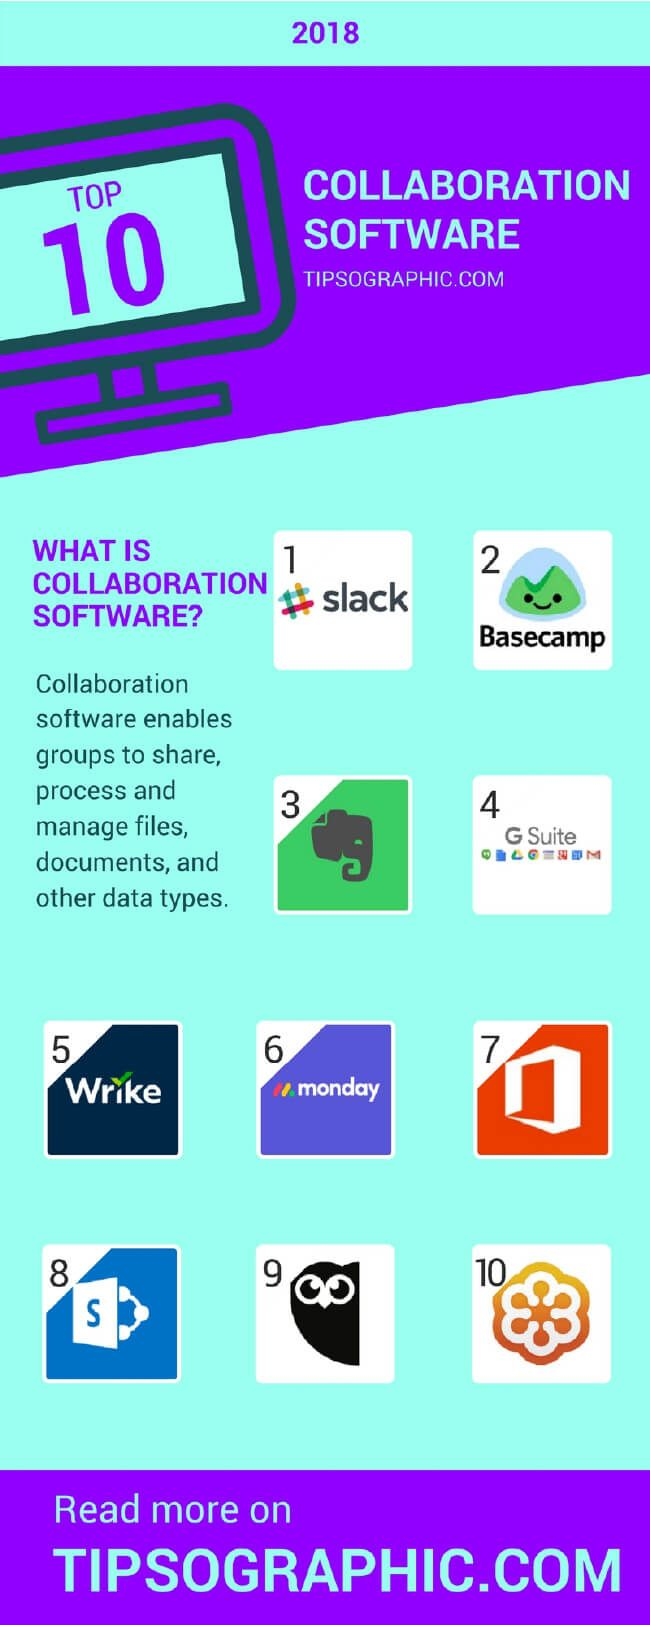 Image titled collaboration software 2018 best systems